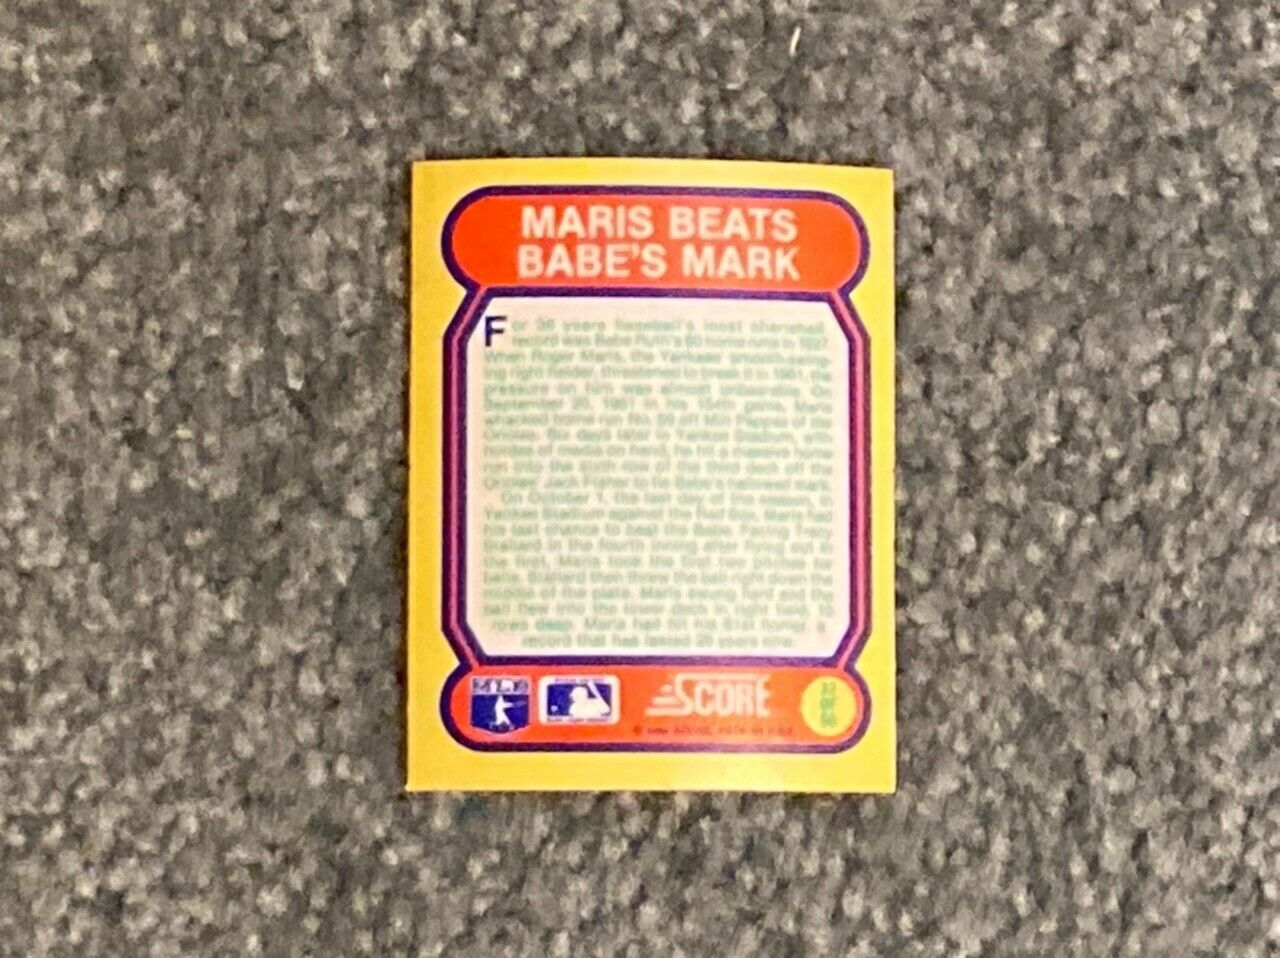 SCORE 1988 Great Moments In Baseball Hollogram Card Roger Maris Passes Babe Ruth - $2.00